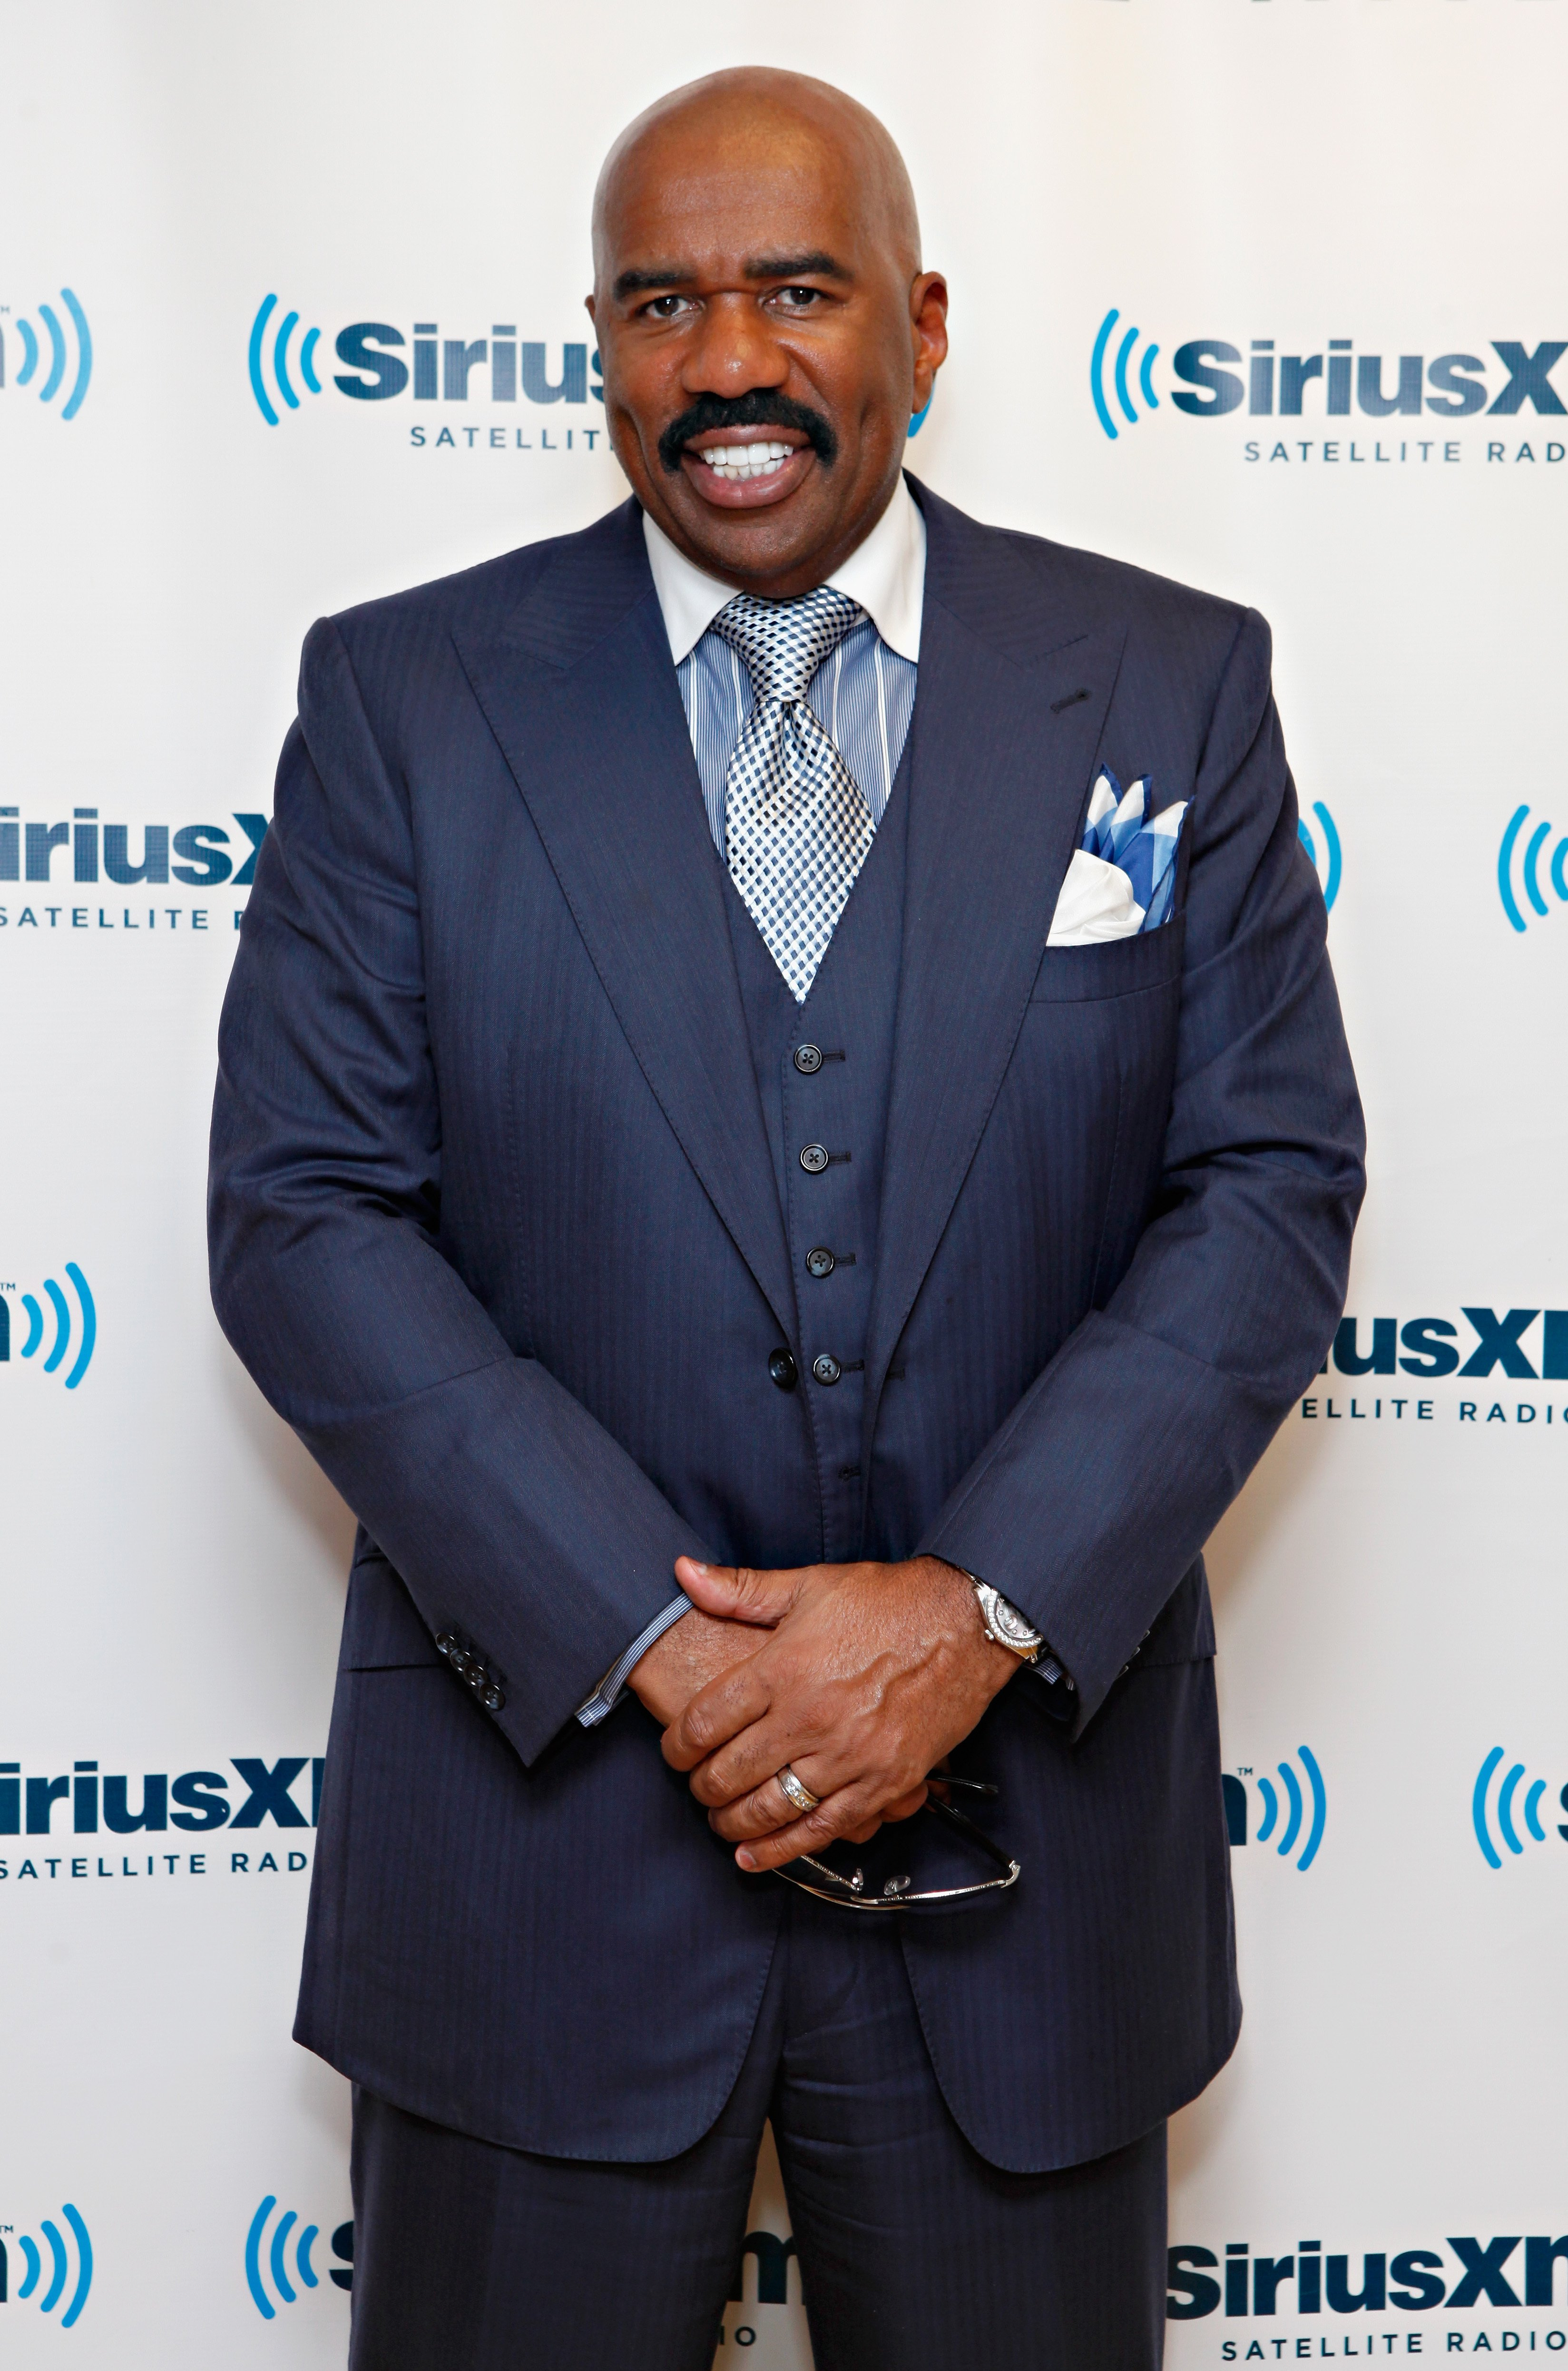 Steve Harvey visits the SiriusXM Studio on August 29, 2012 in New York City | Photo: Getty Images